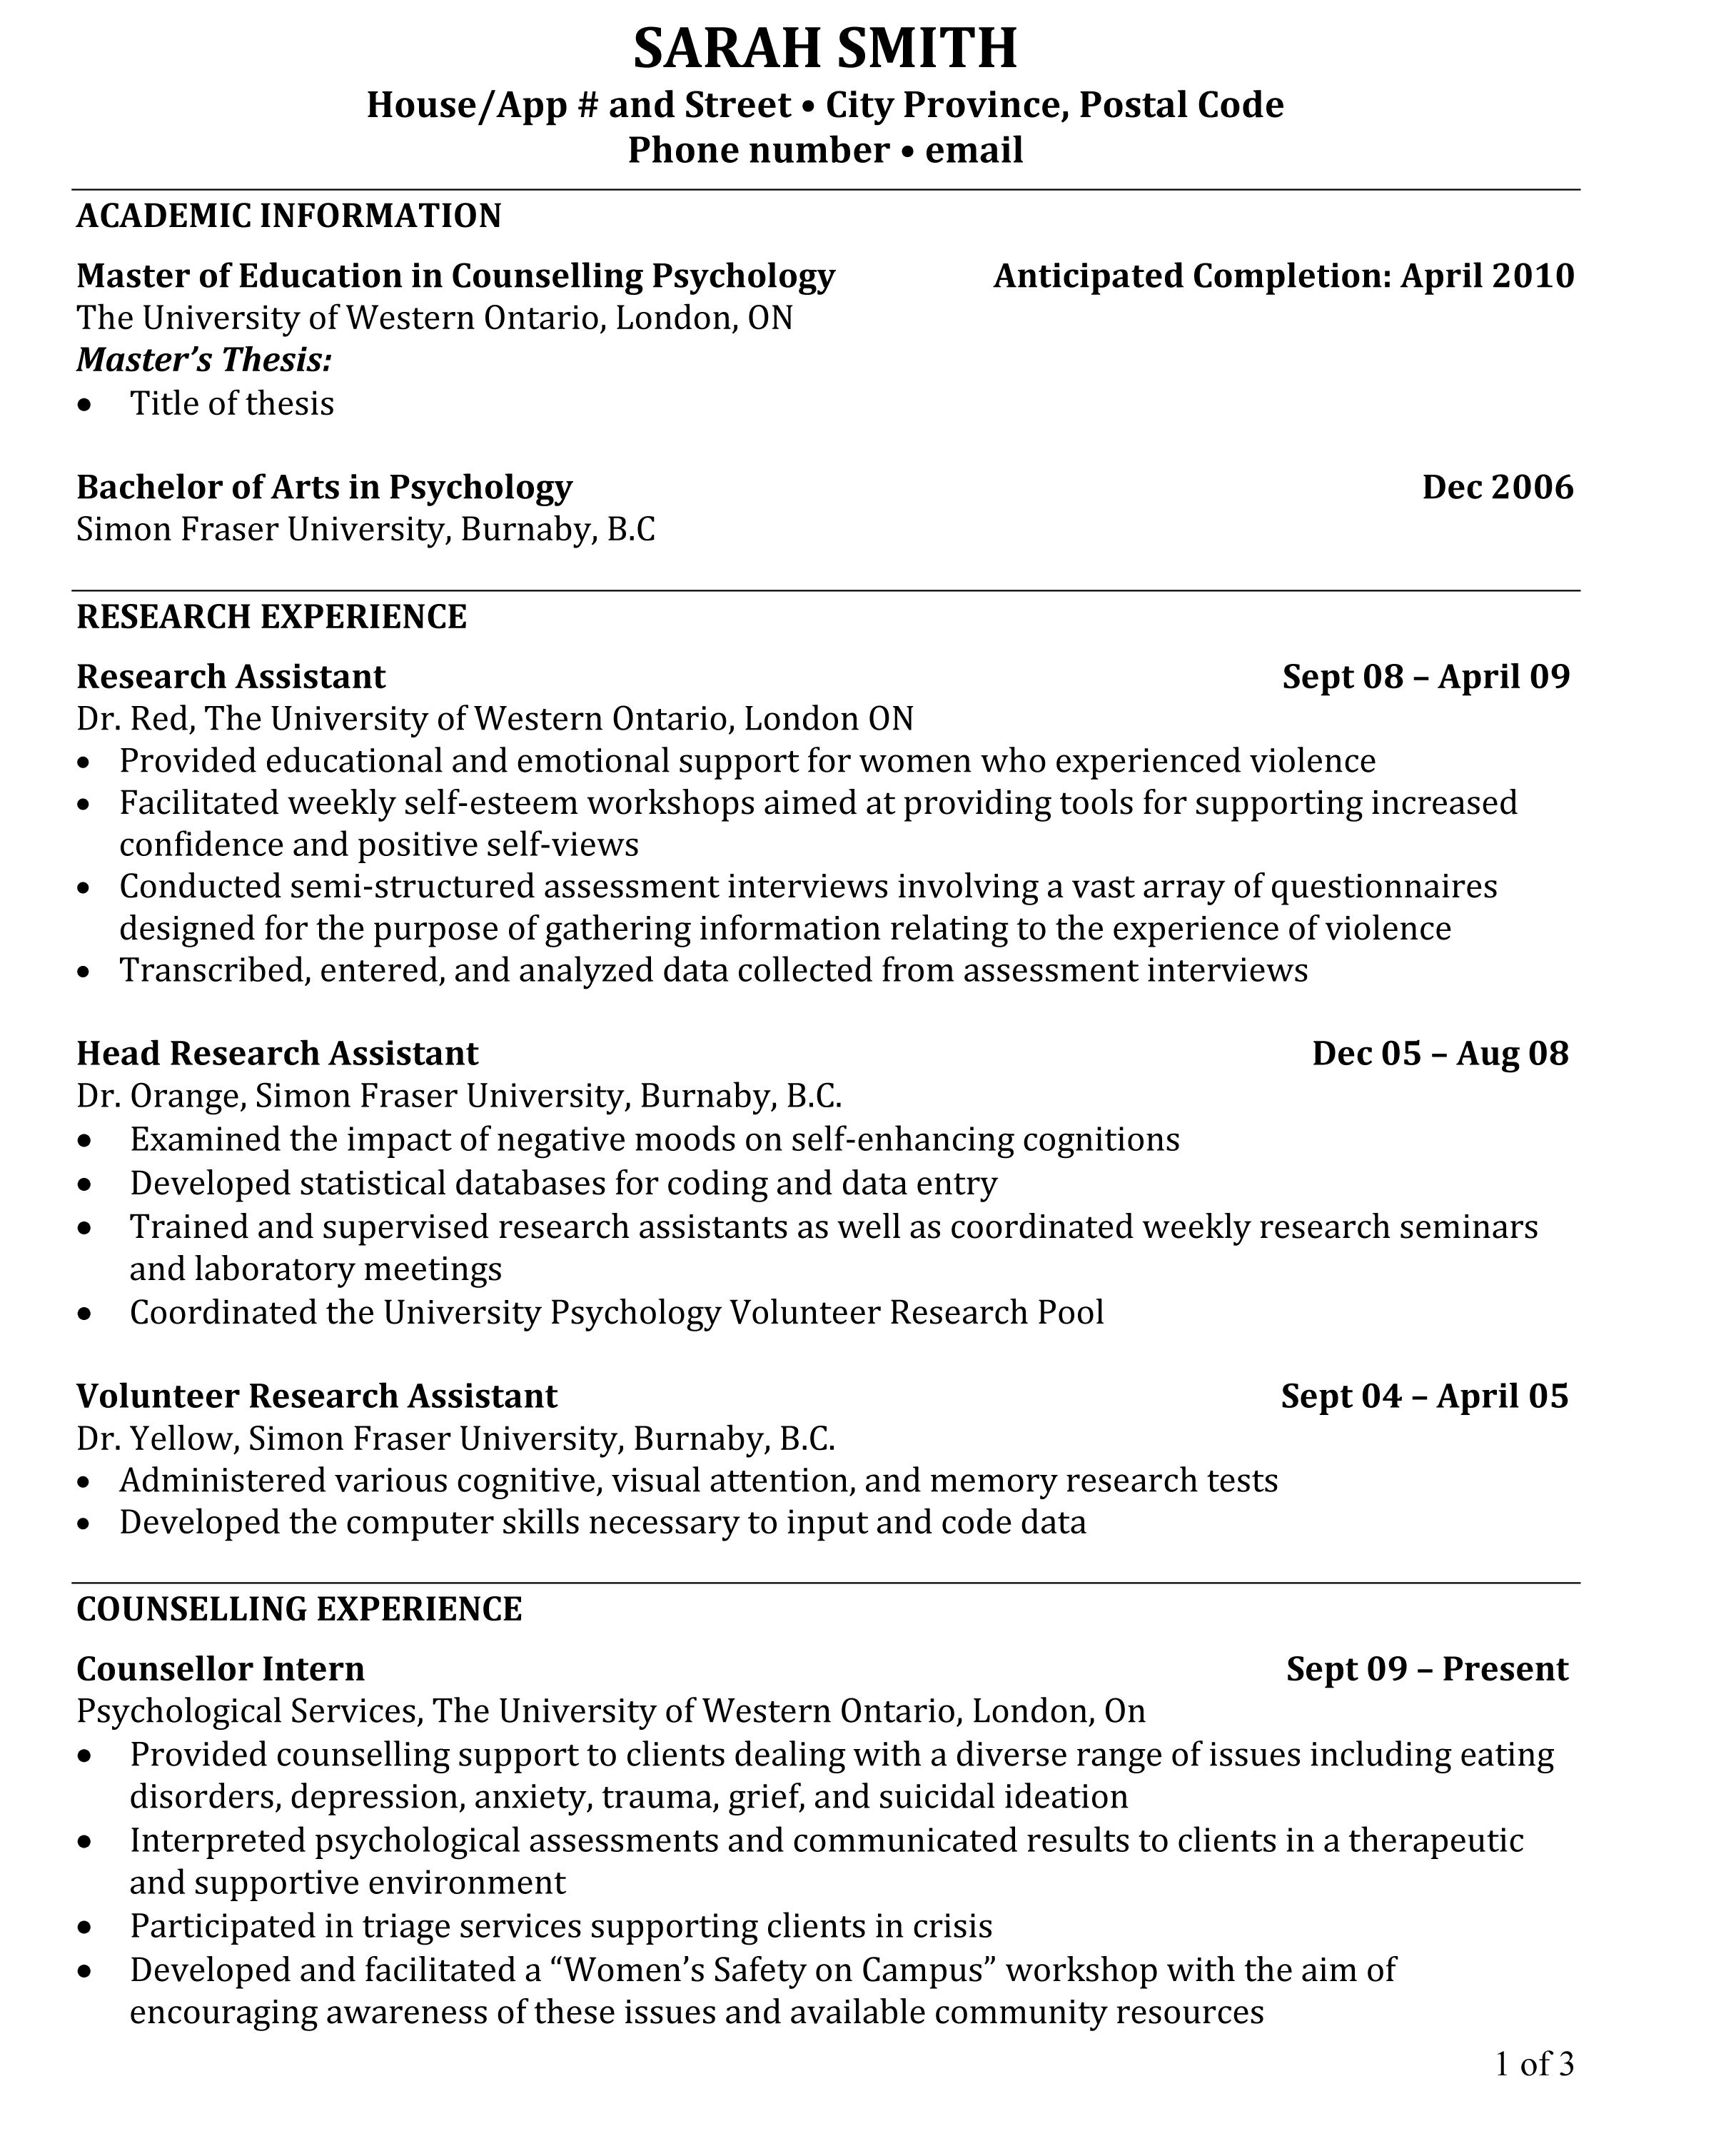 cv template university student - Google Search | CV templates ...